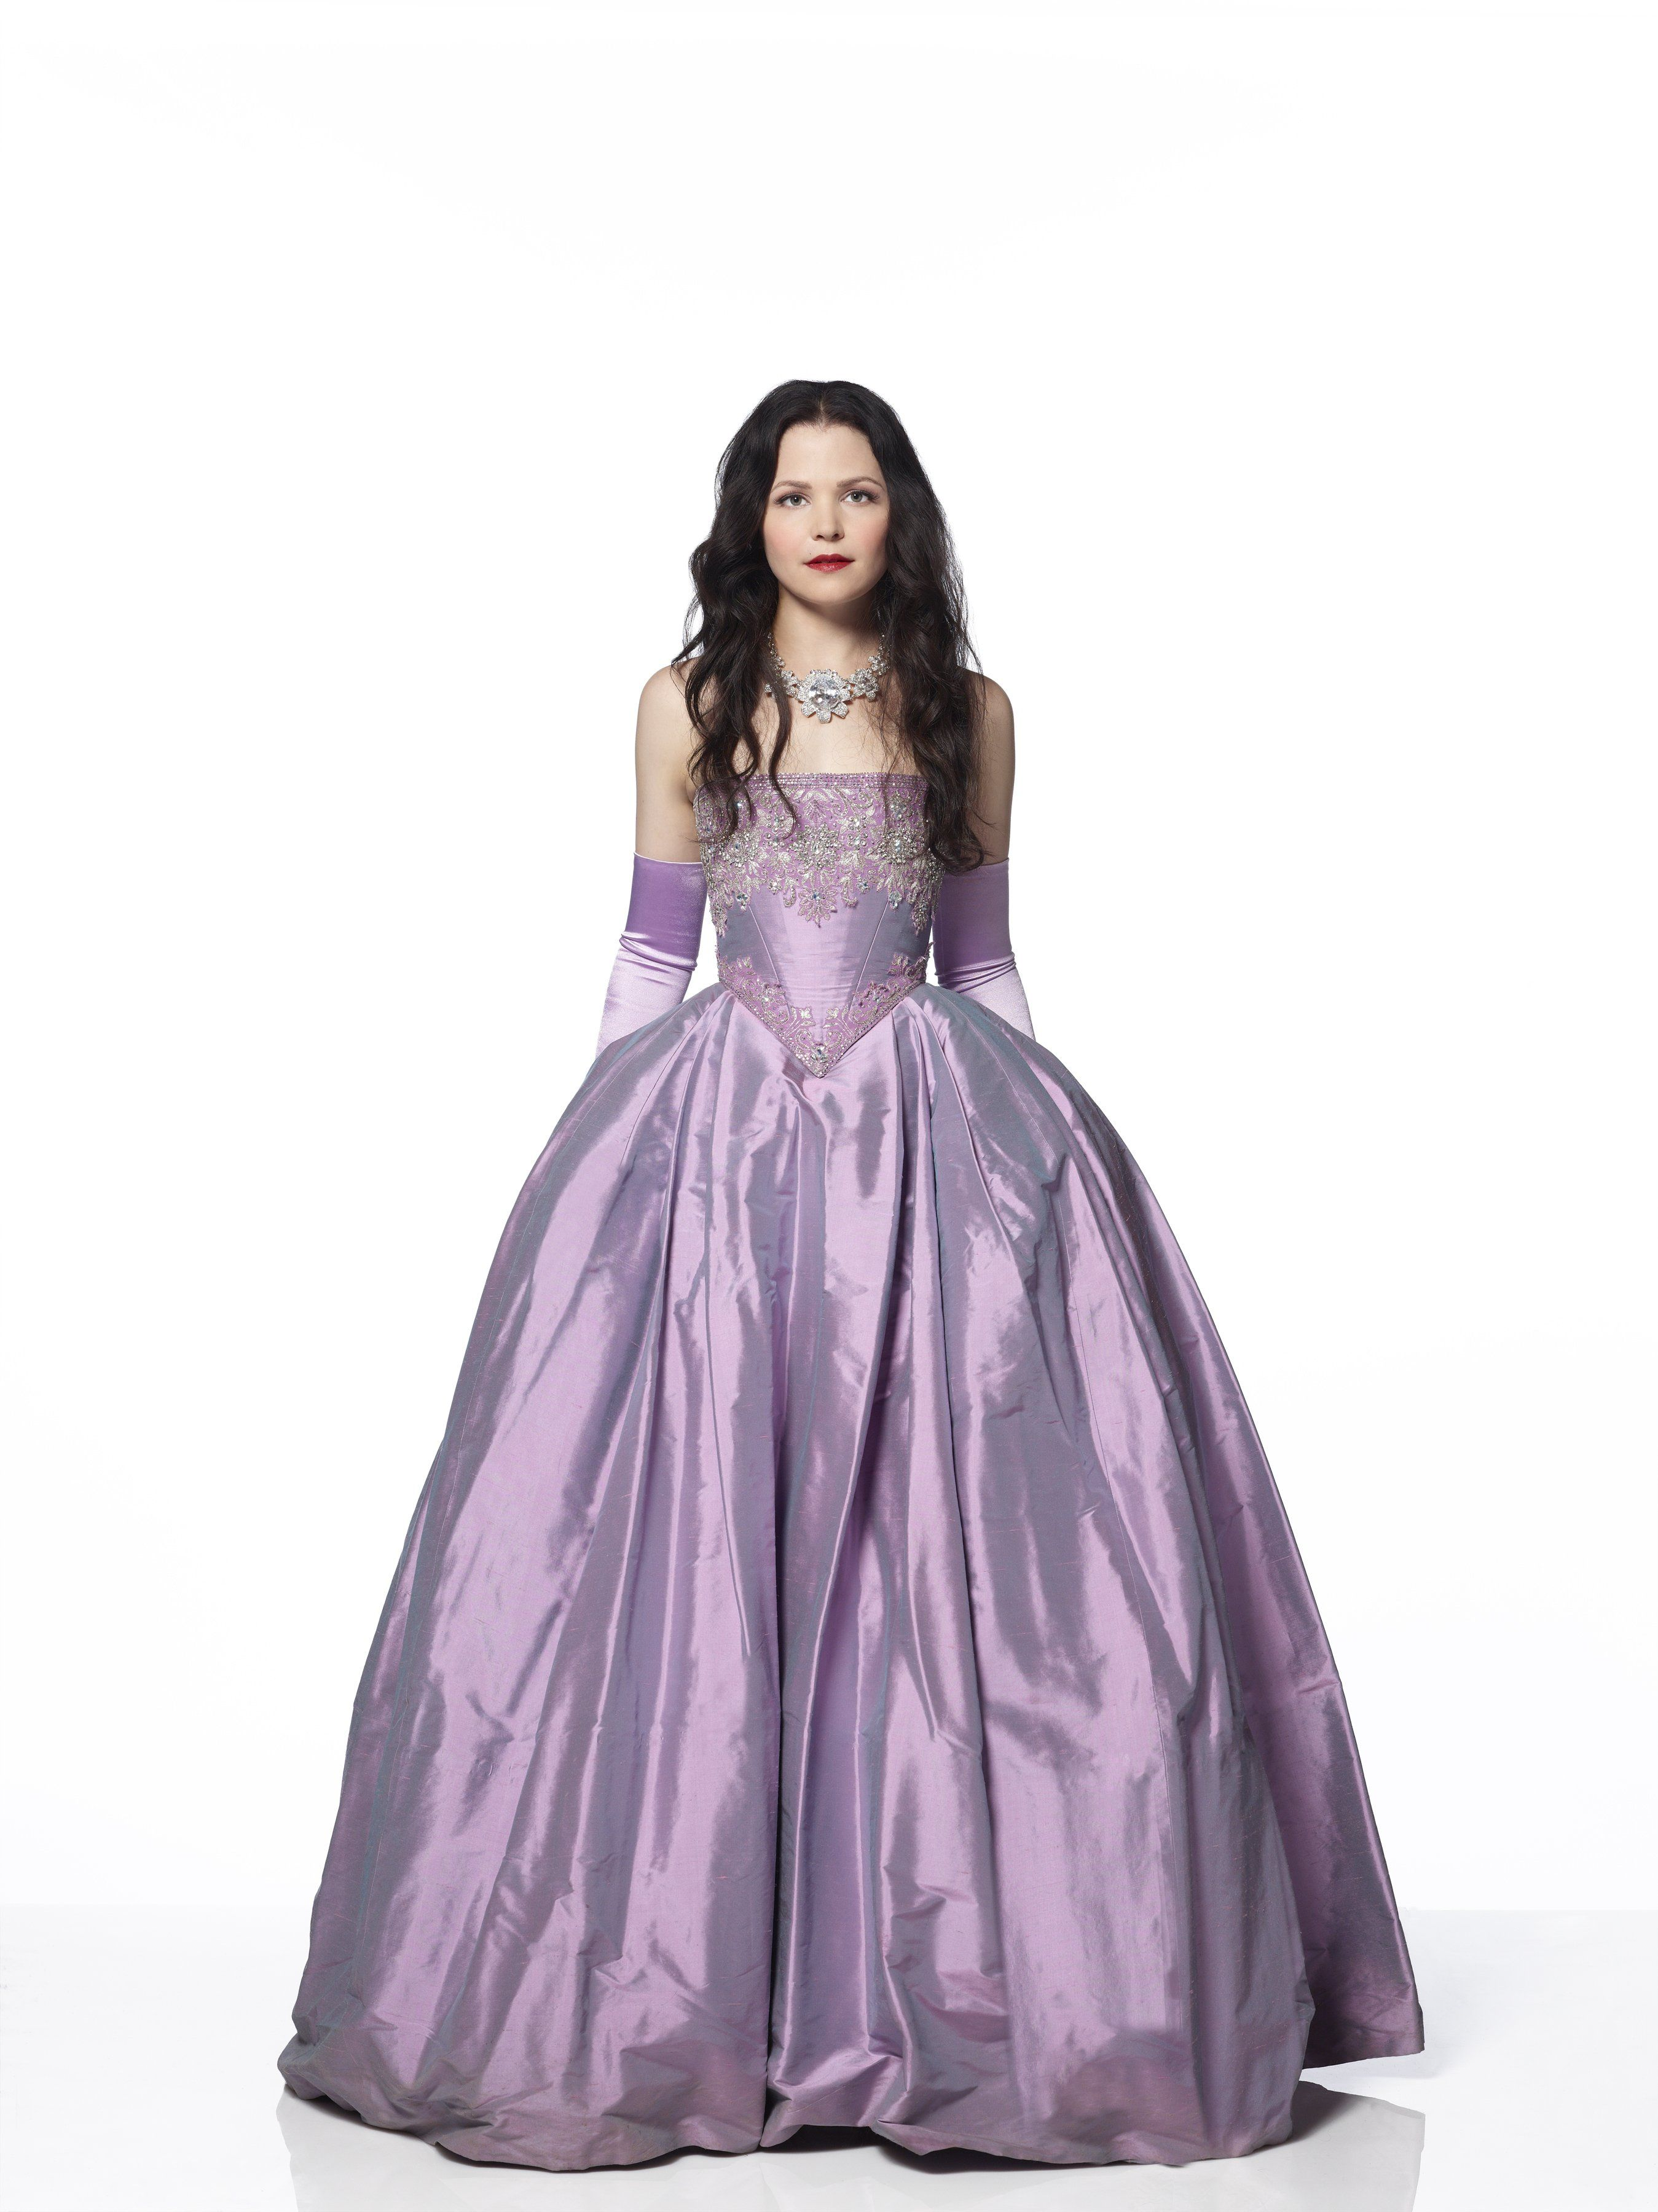 Once Upon a Time - Season 2 - Promo Photo | M•M•B | Pinterest | OUAT ...